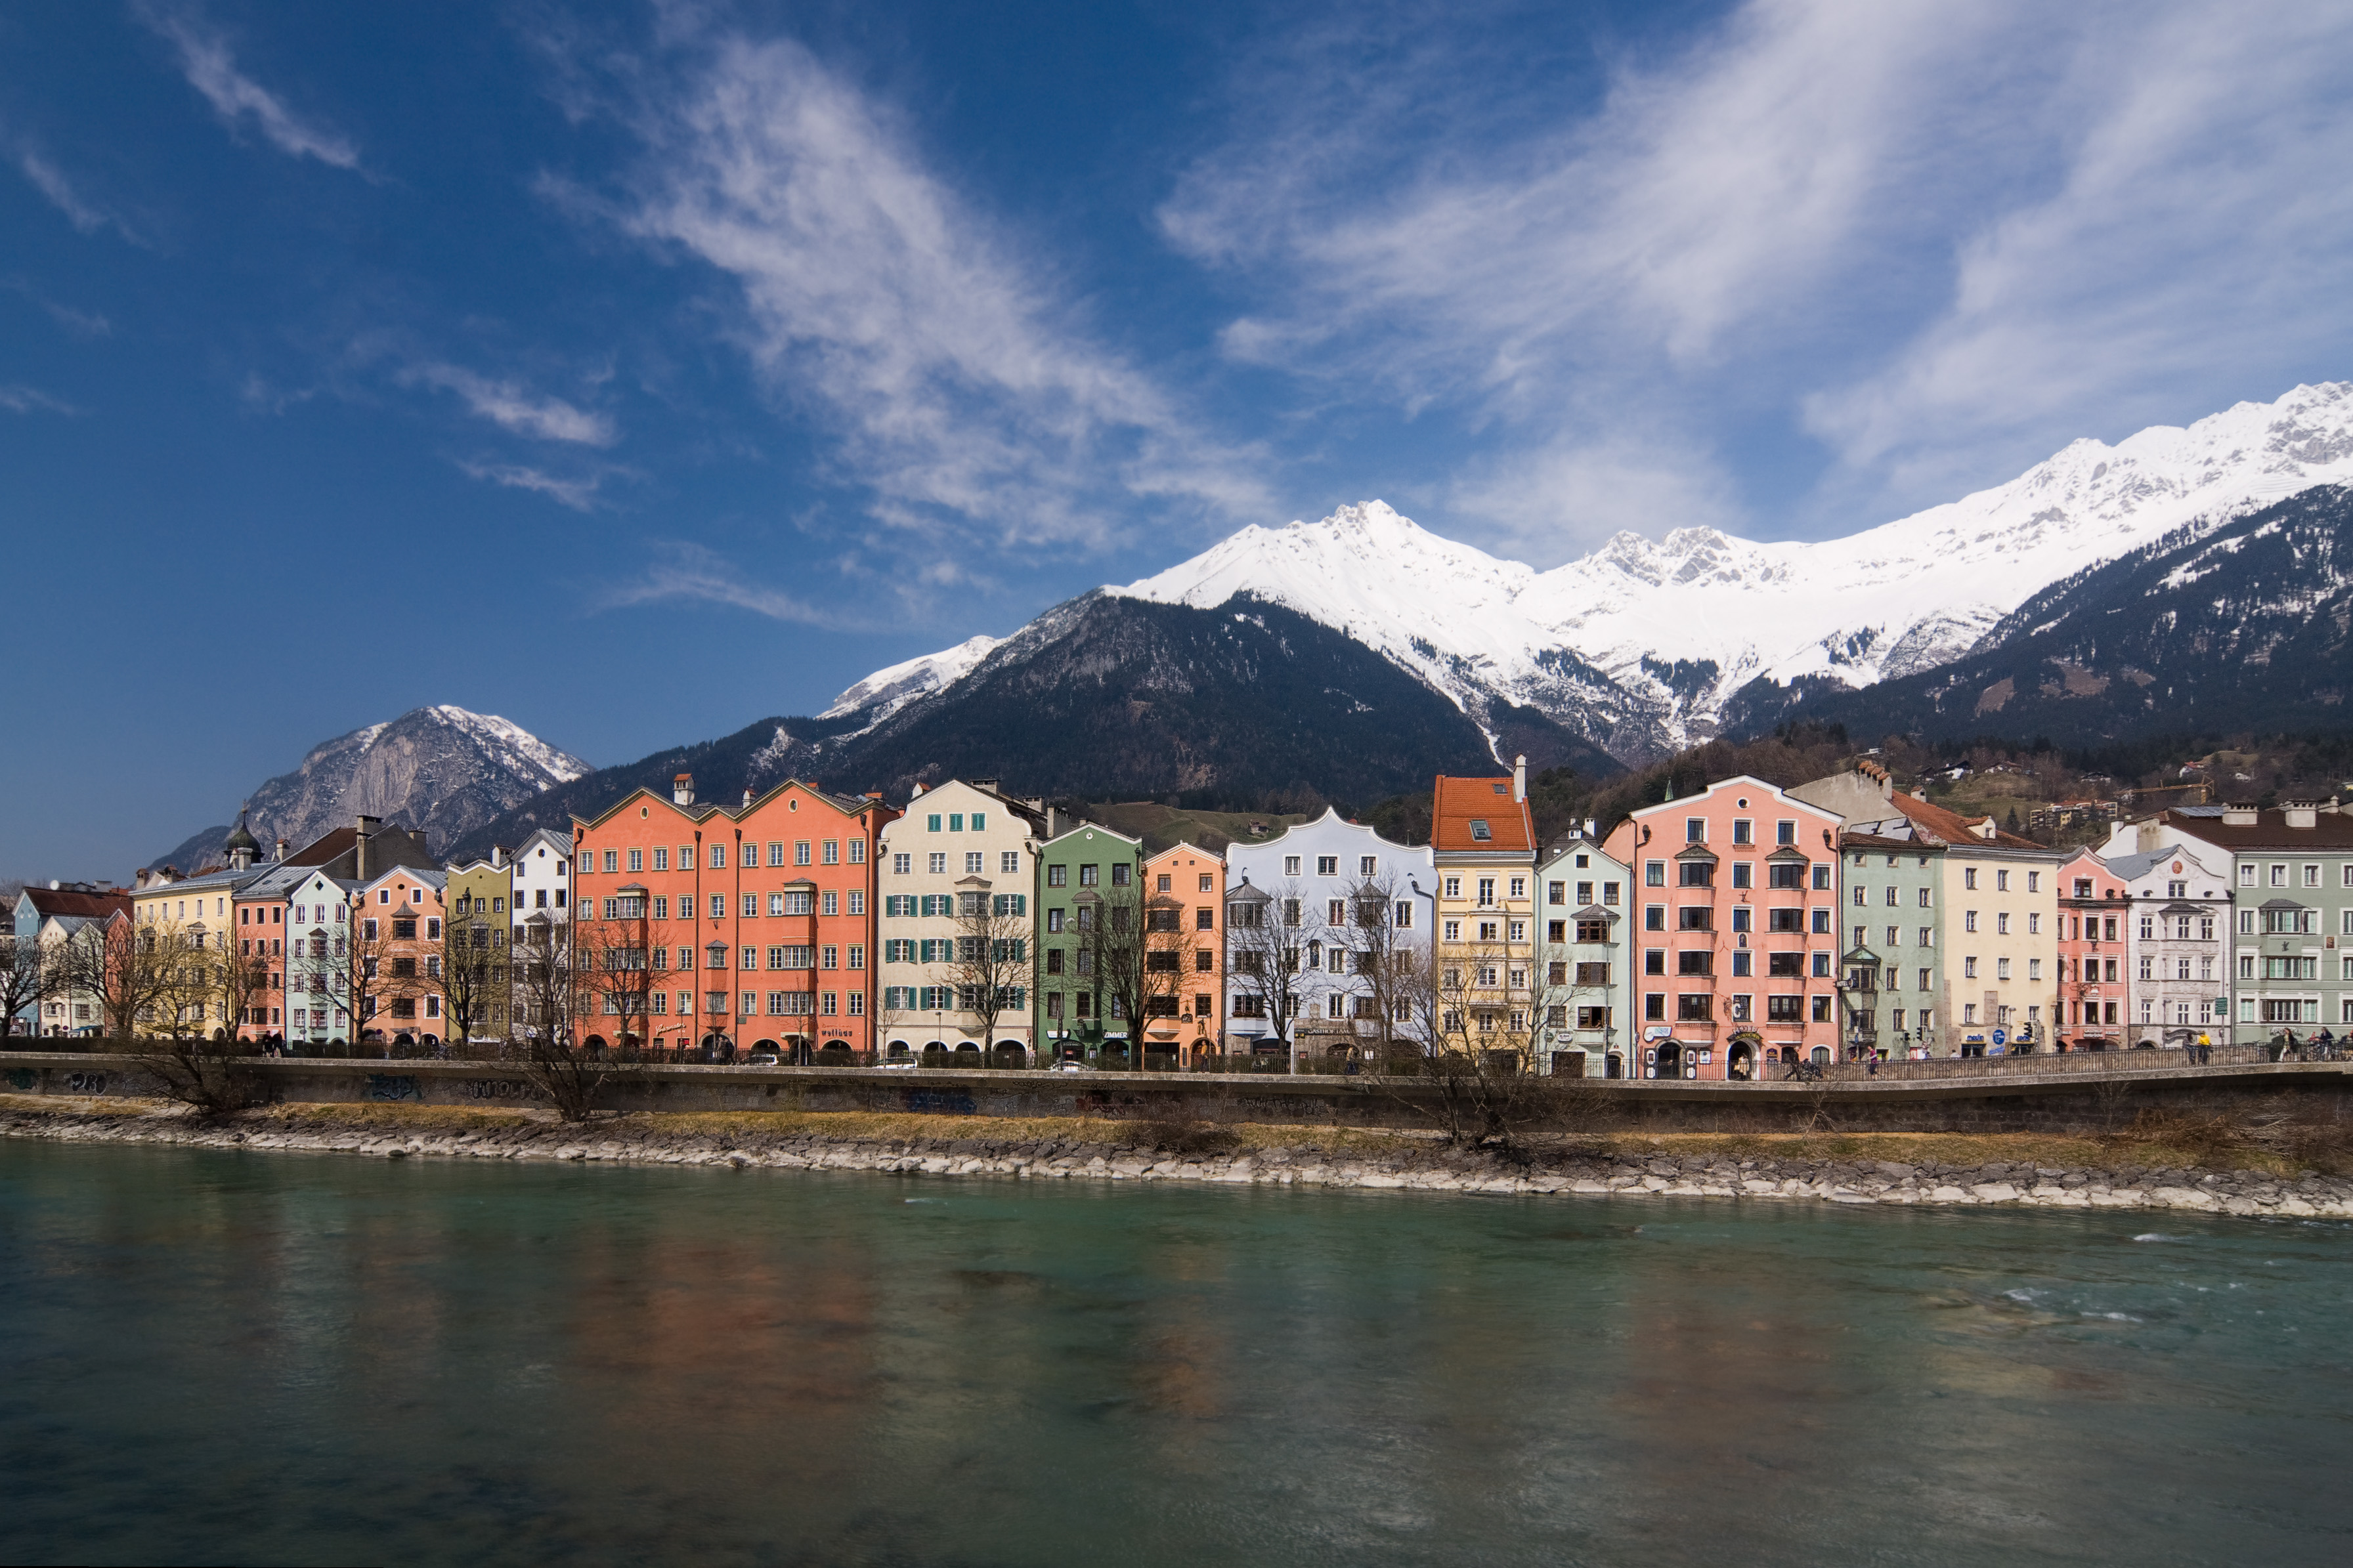 Colourful Innsbruck before the Alps